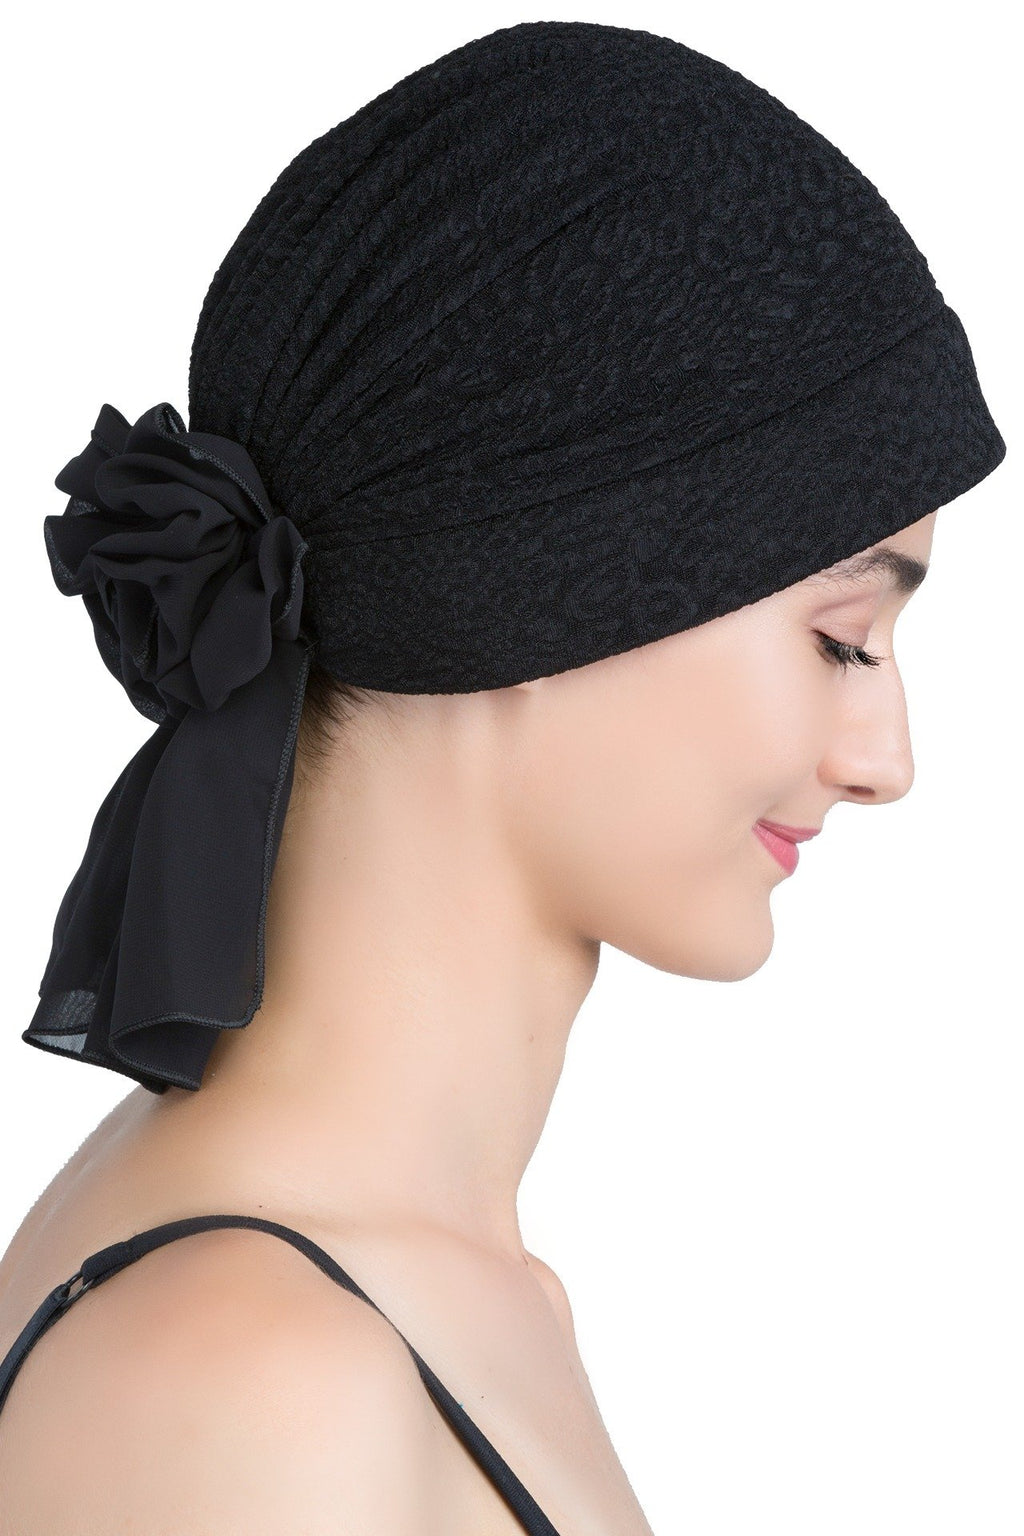 deresina brocade headwear georgette chemo hats black